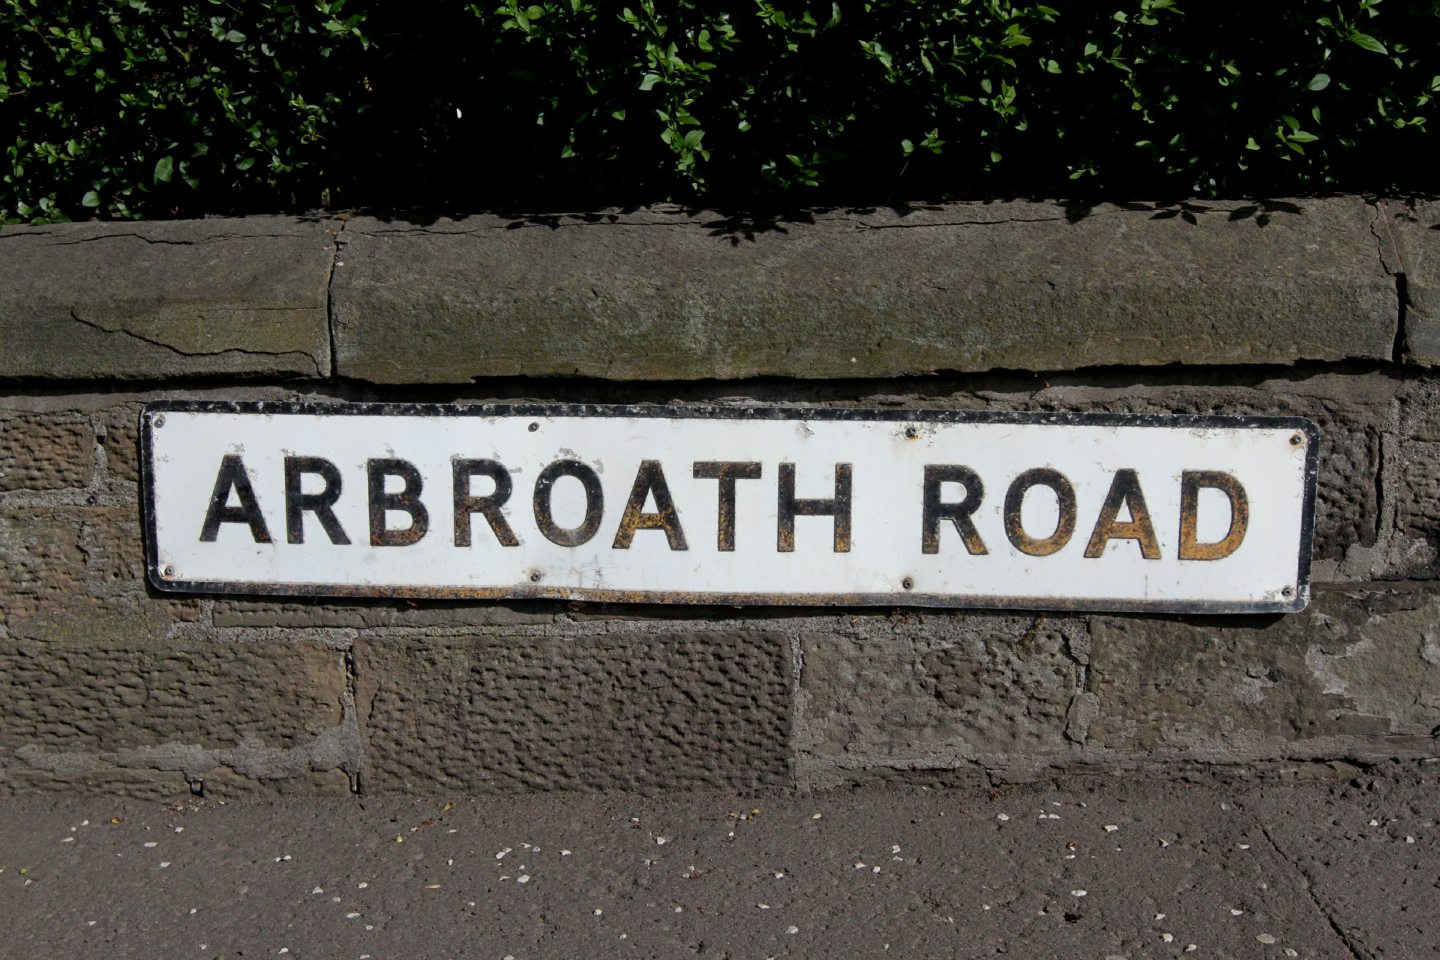 It's alleged the assault occurred on Arbroath Road in Dundee.